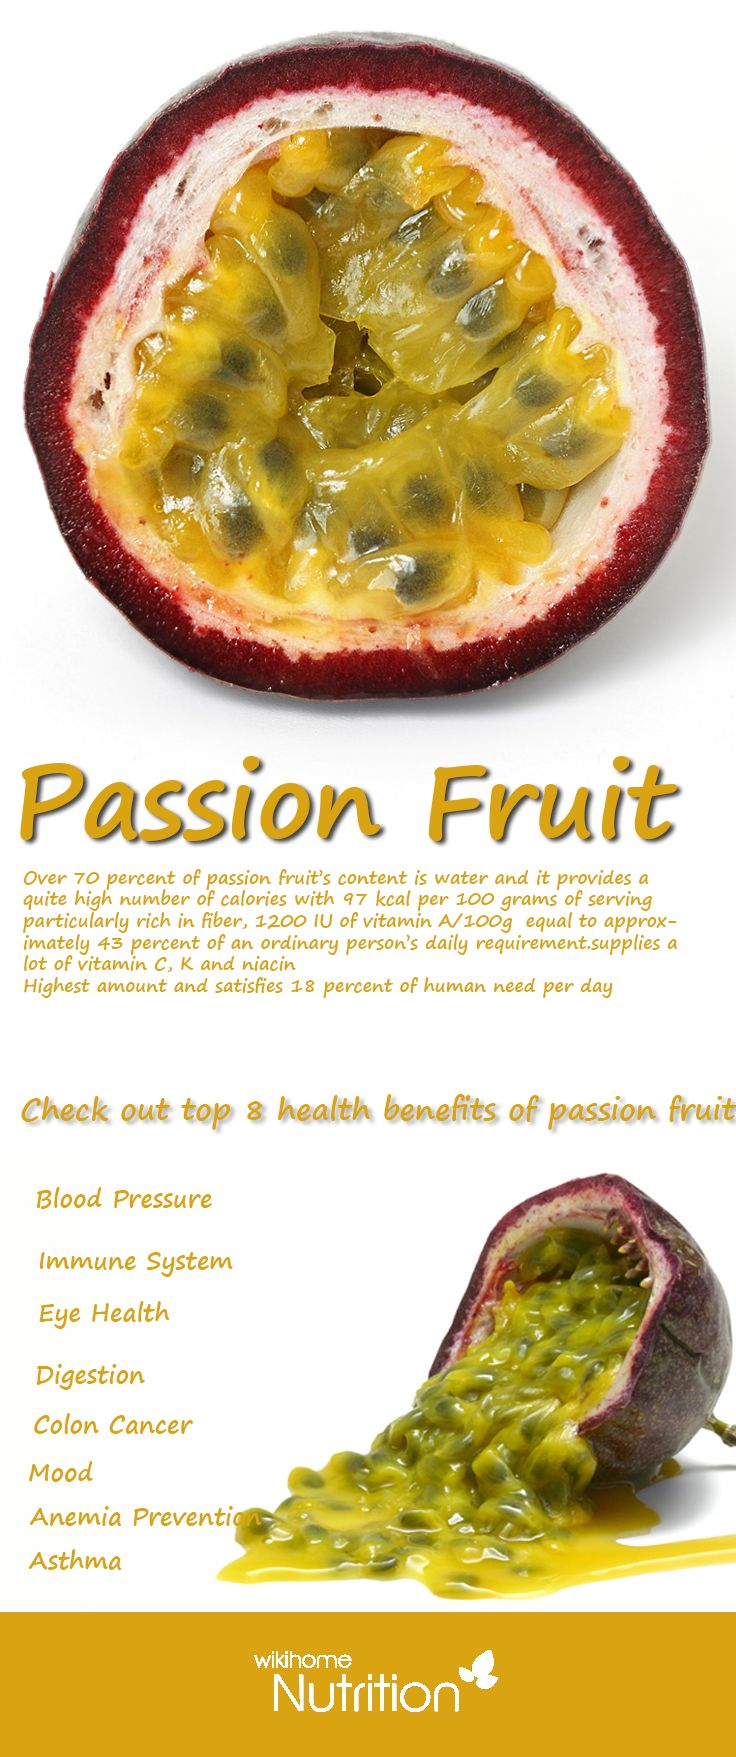 Passion Fruit: Nutrition Facts and Health Benefits